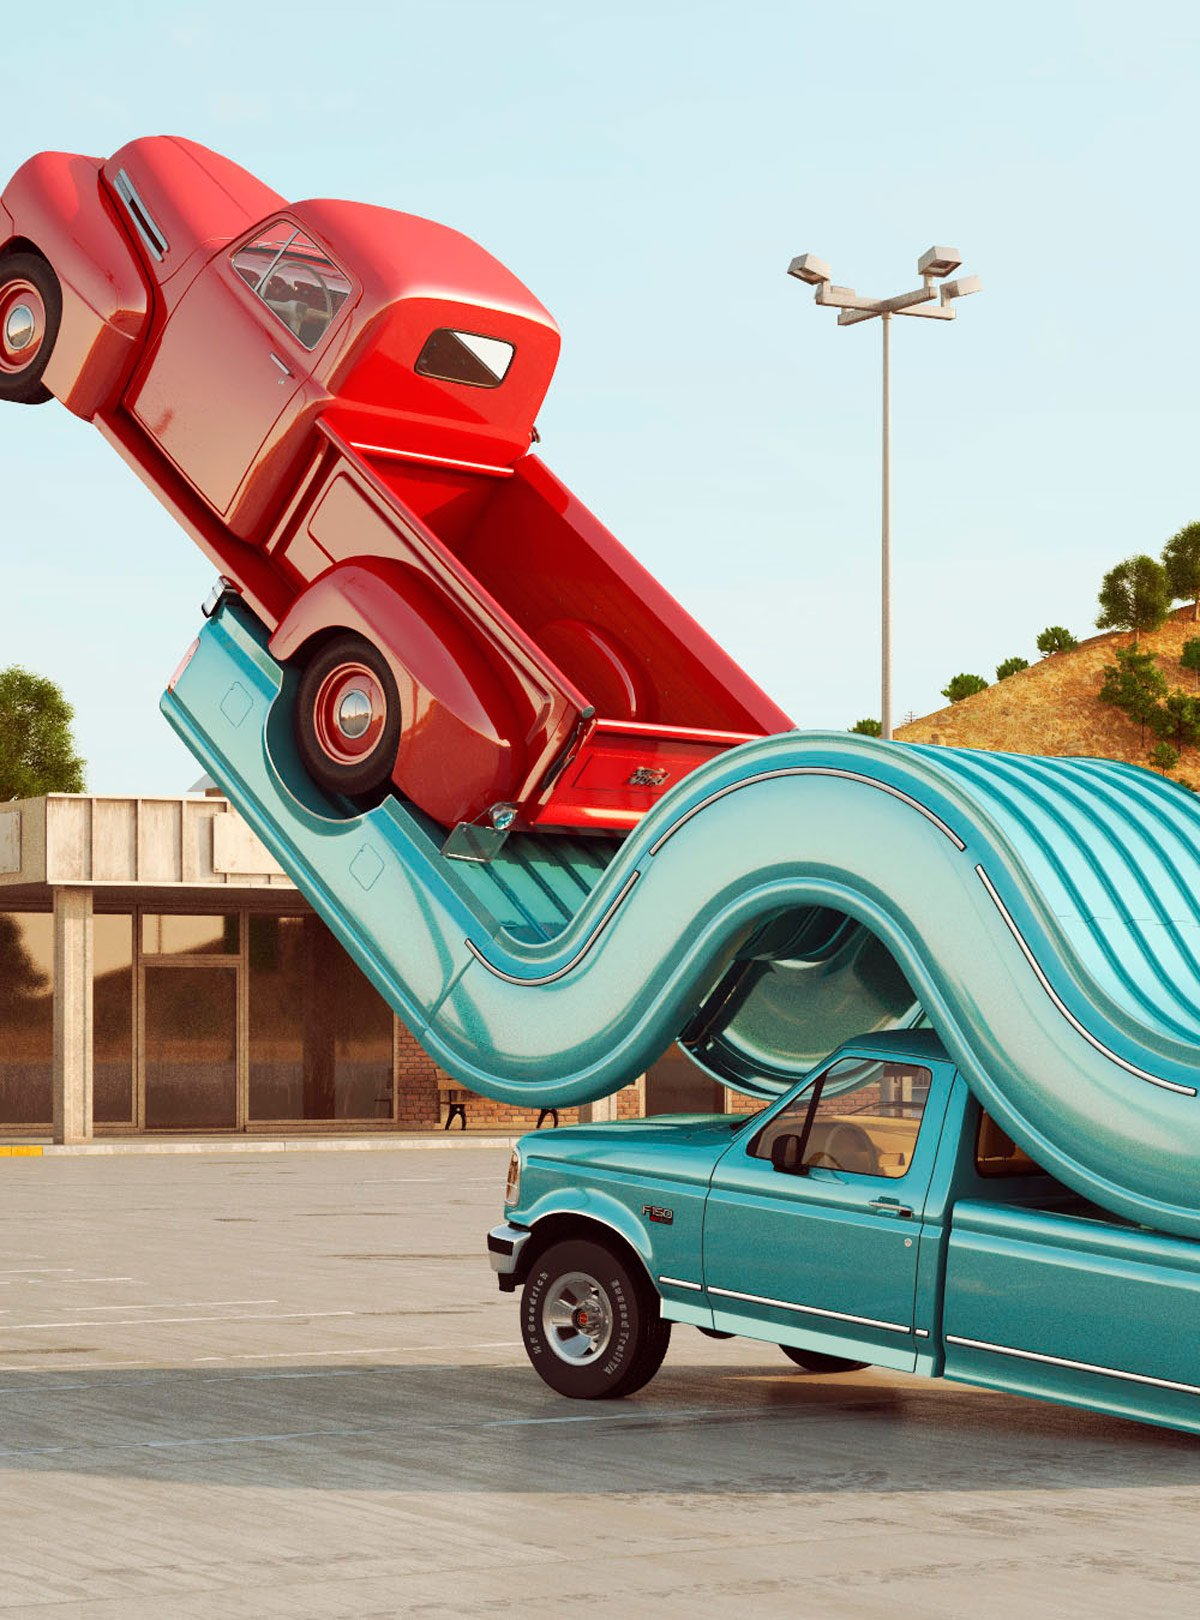 tales-of-auto-elasticity-rendered-photographs-by-chris-labrooy-8